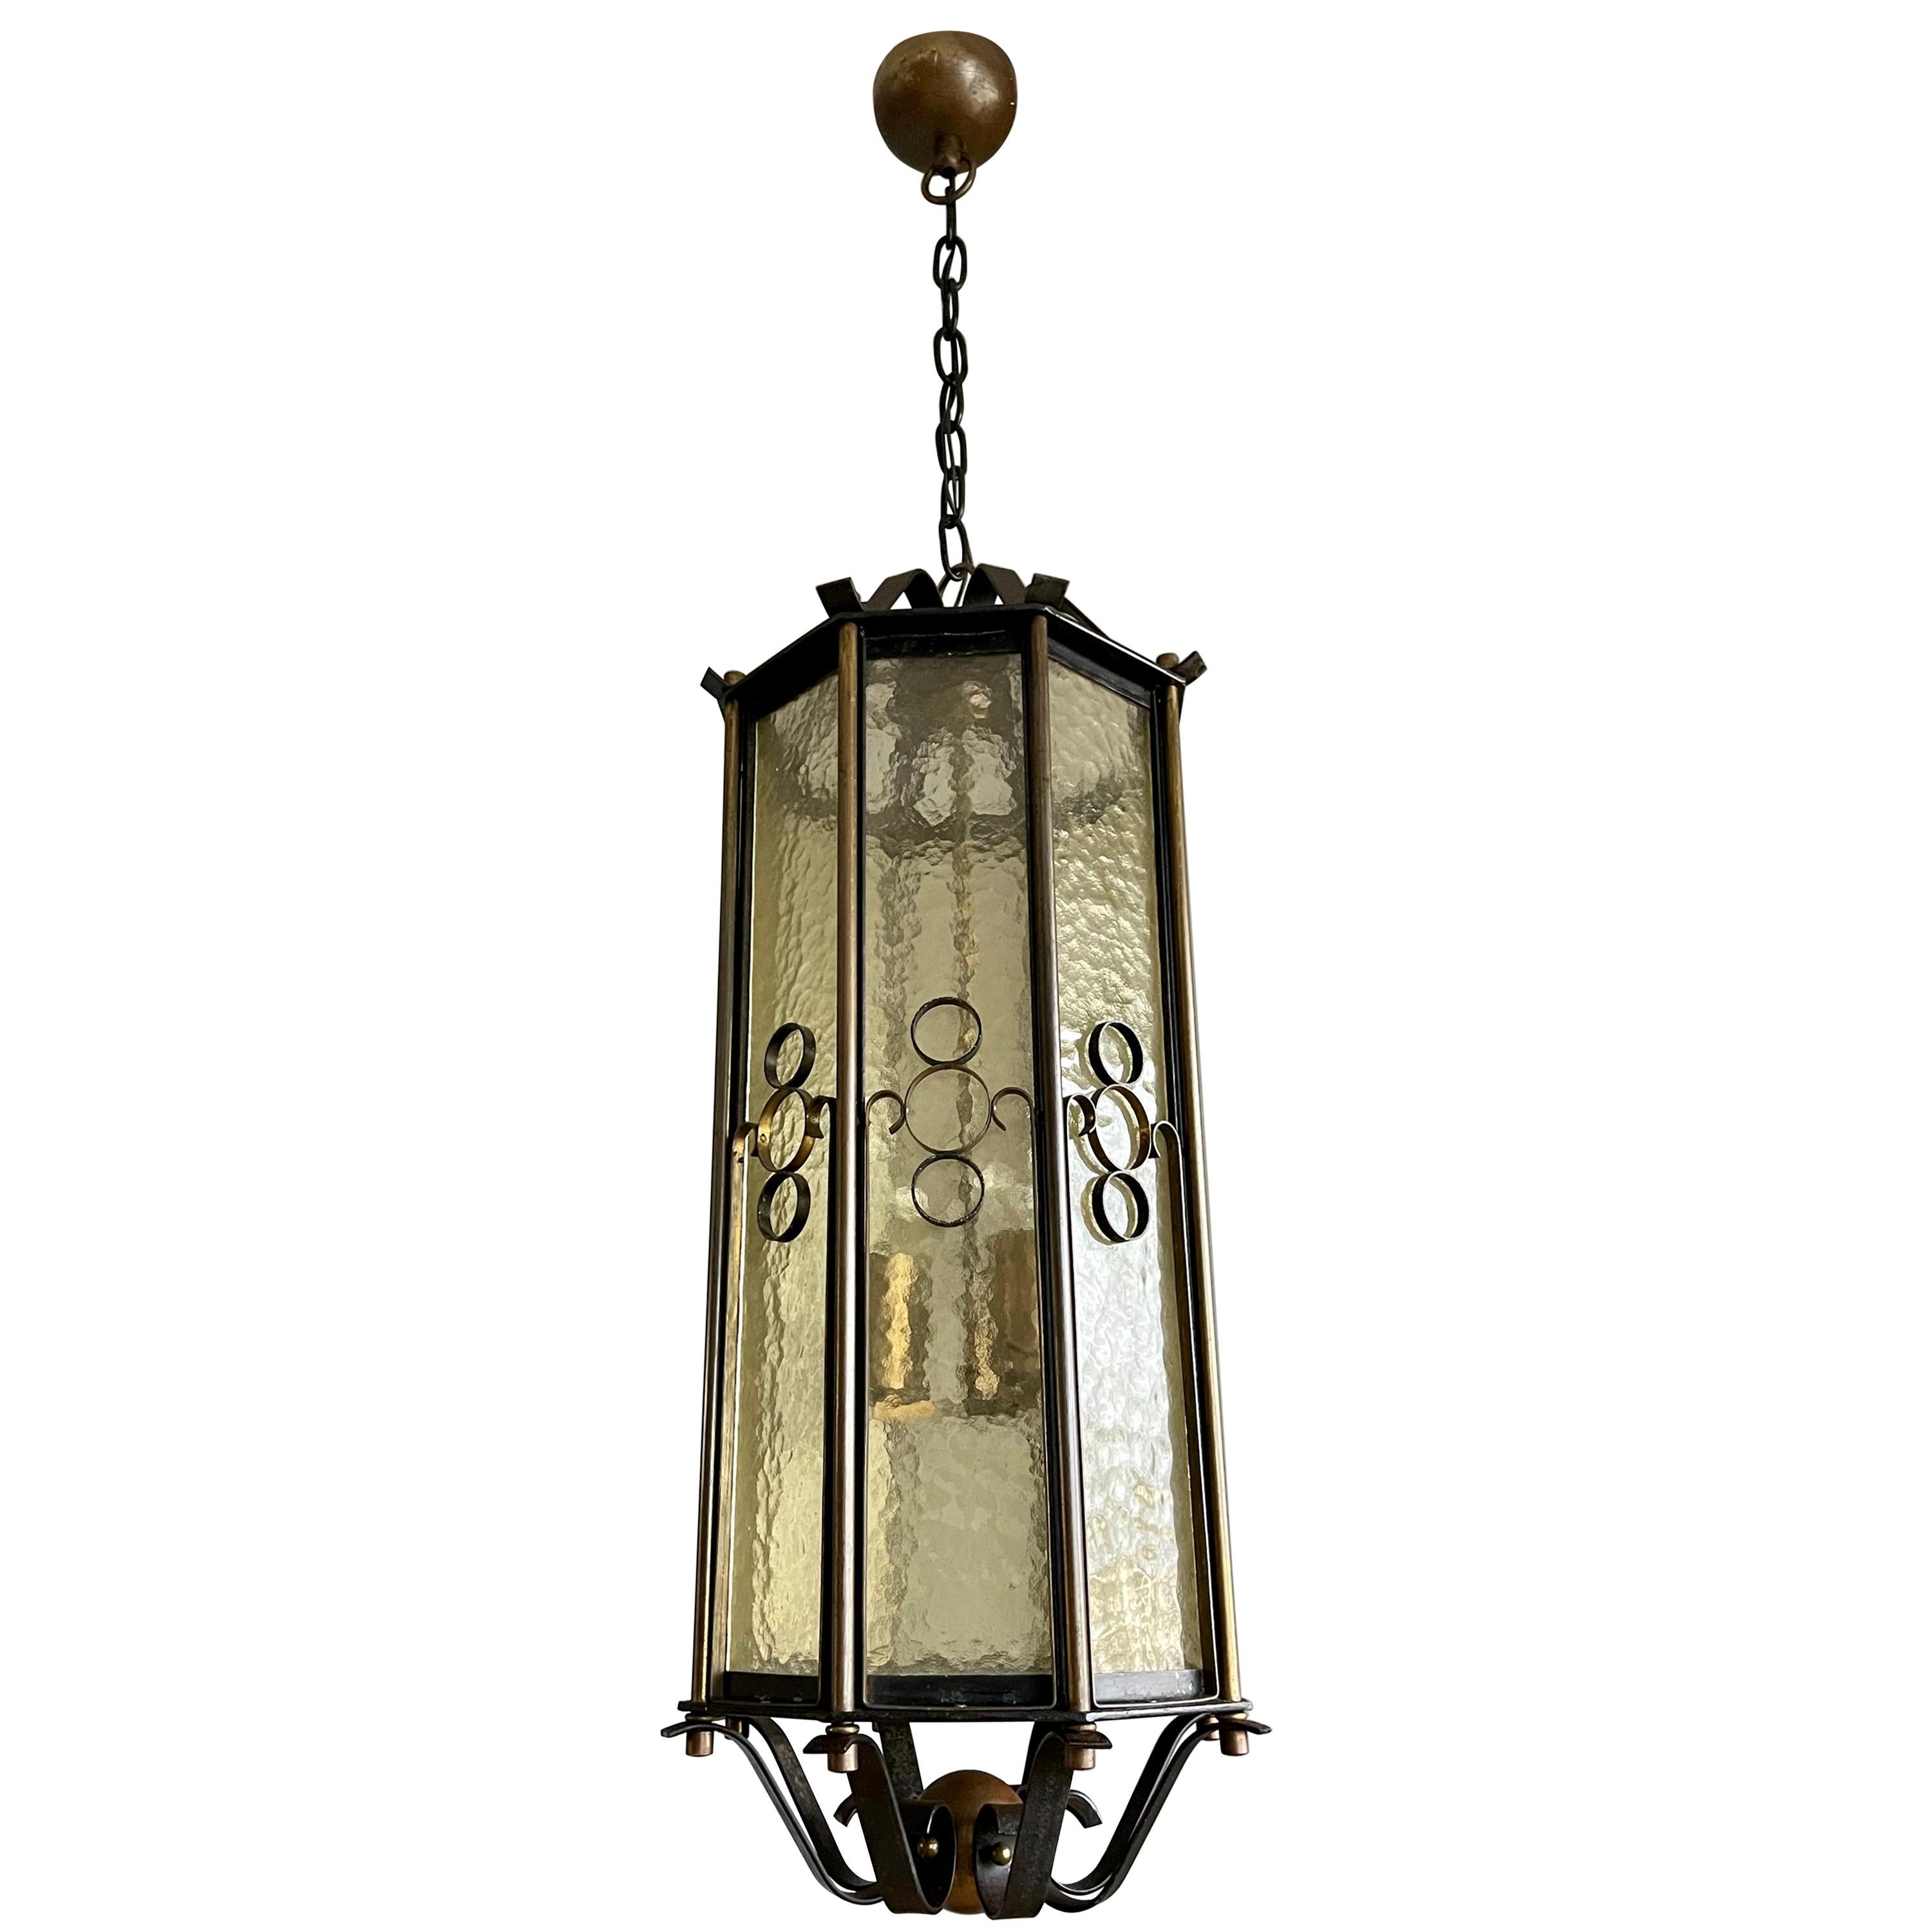 Extra Large Brass and Wrought Iron Lantern / Pendant with Cathedral Glass, 1930s